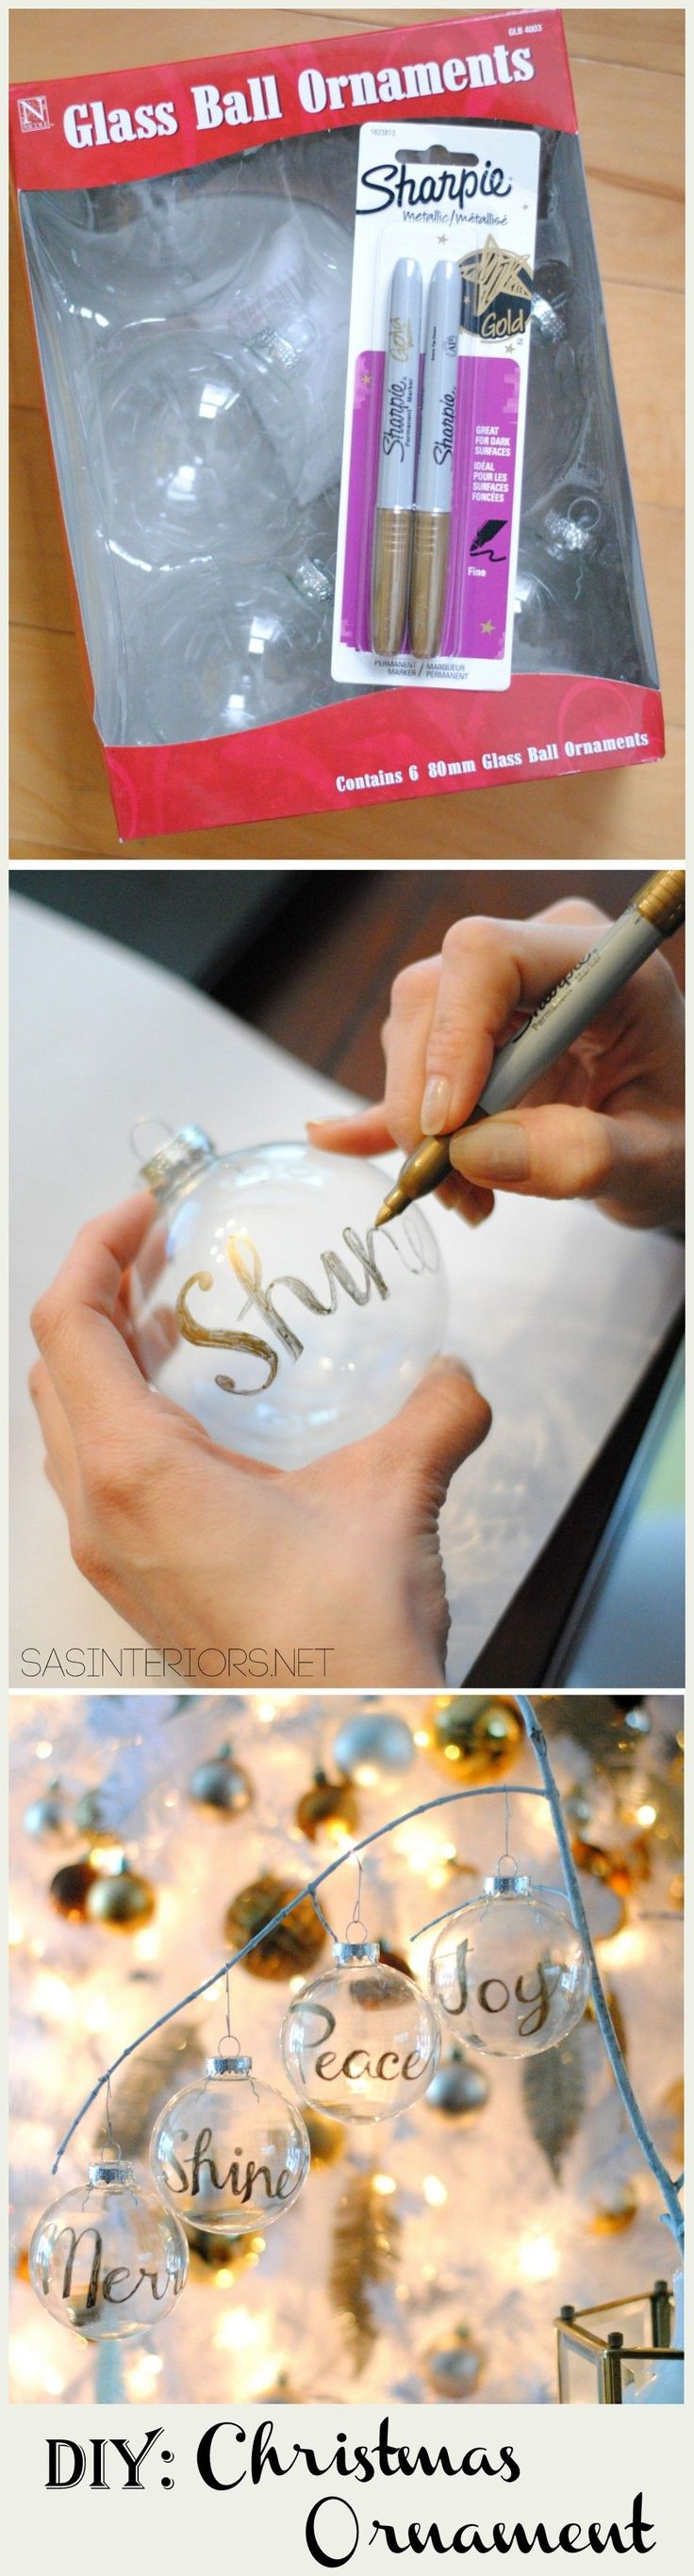 DIY: Word Christmas Ornament using a Gold Sharpie